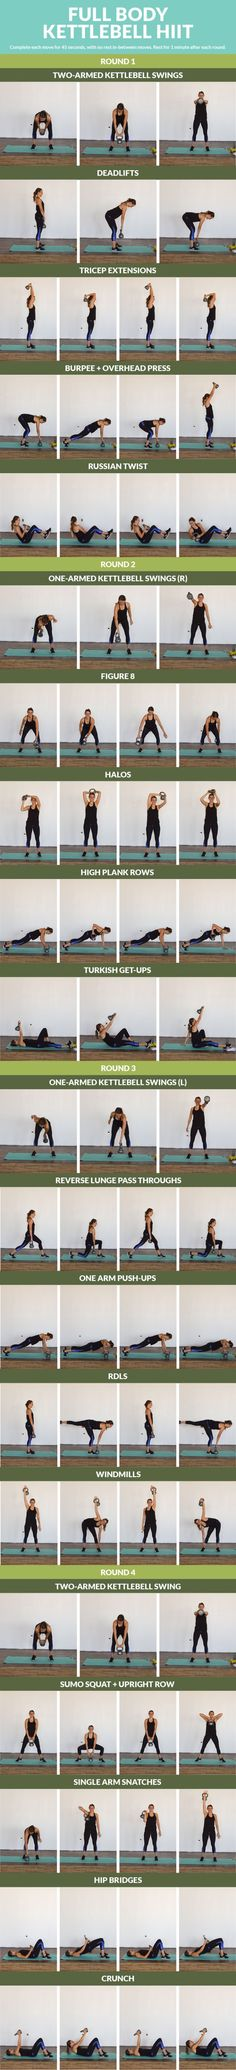 Strengthen your entire body with this 20 minute cardio and strength kettlebell combo! Mix up your regular workout routine with these fun, yet effective kettlebell exercises. You'll tone multiple mu…